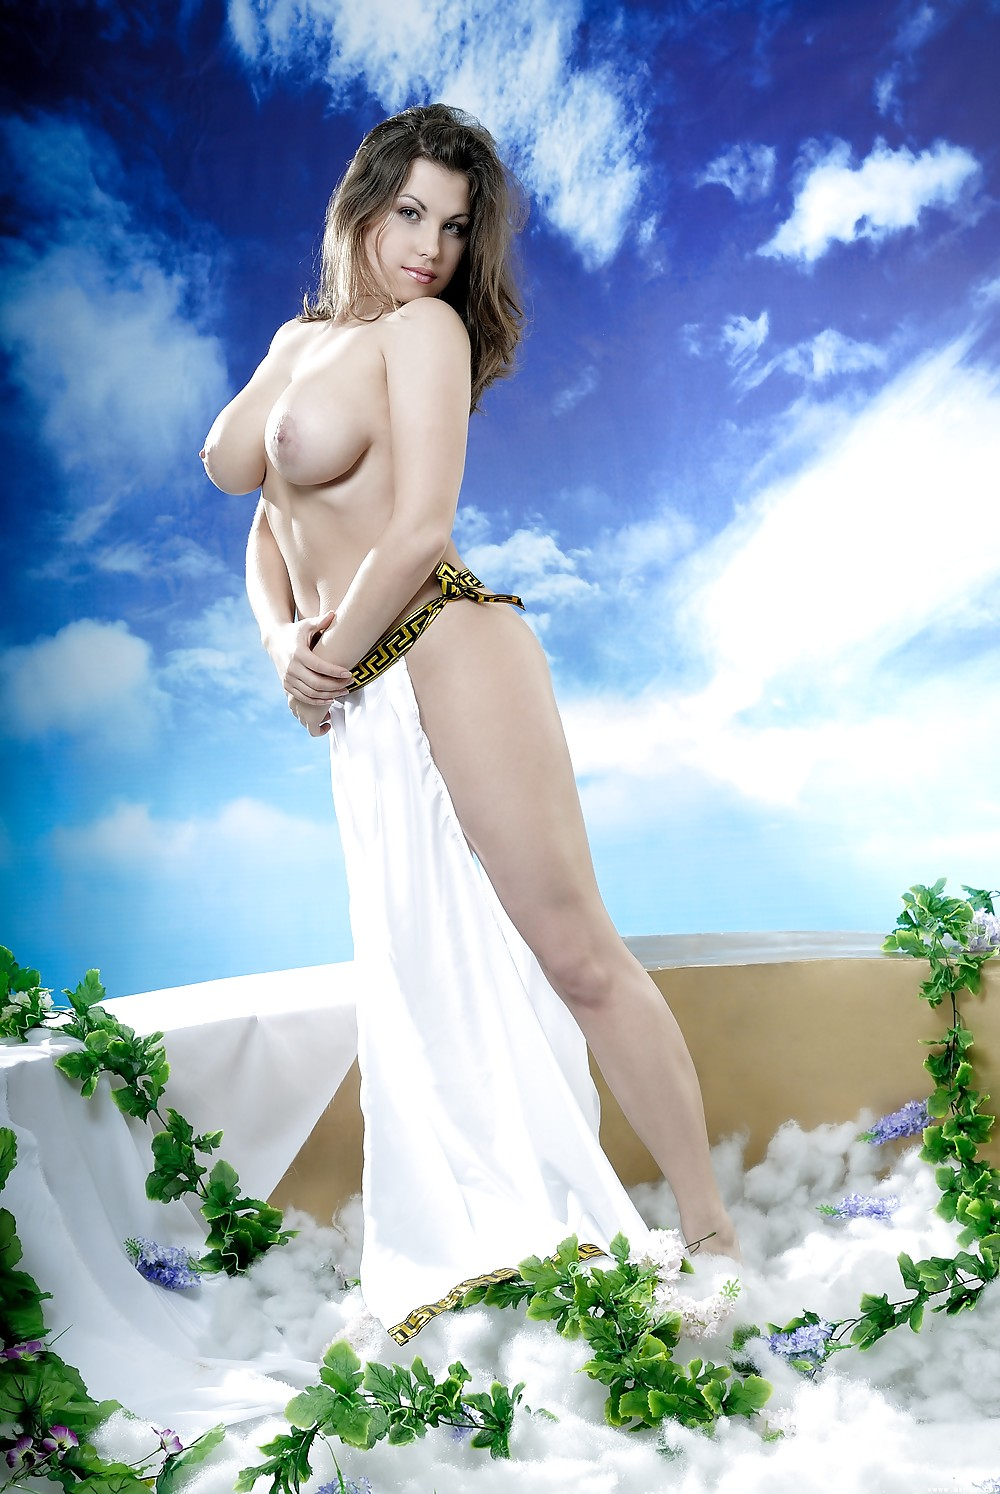 Nudes outdoors yanti the busty goddess nud mom image